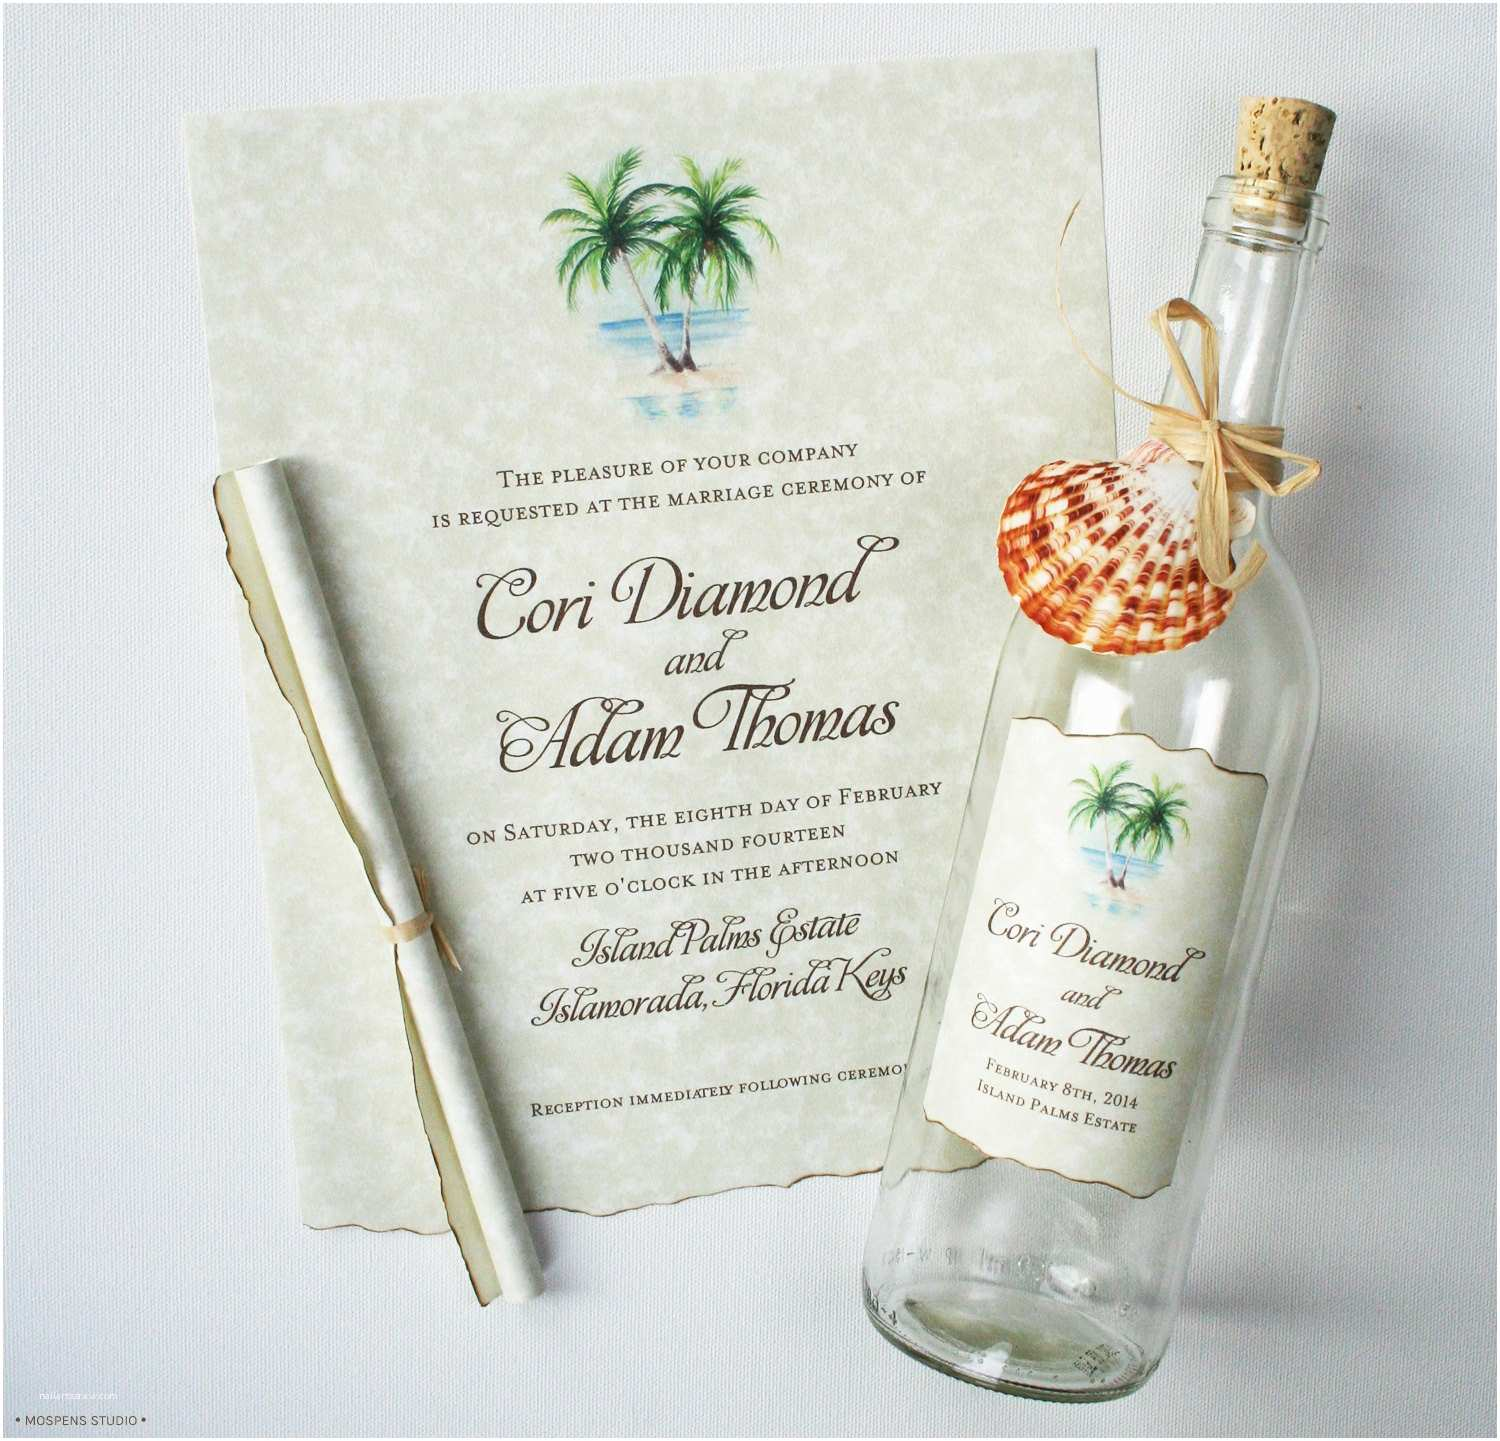 Wedding Invitations In A Bottle Message In A Bottle Invitations Bottle Wedding by